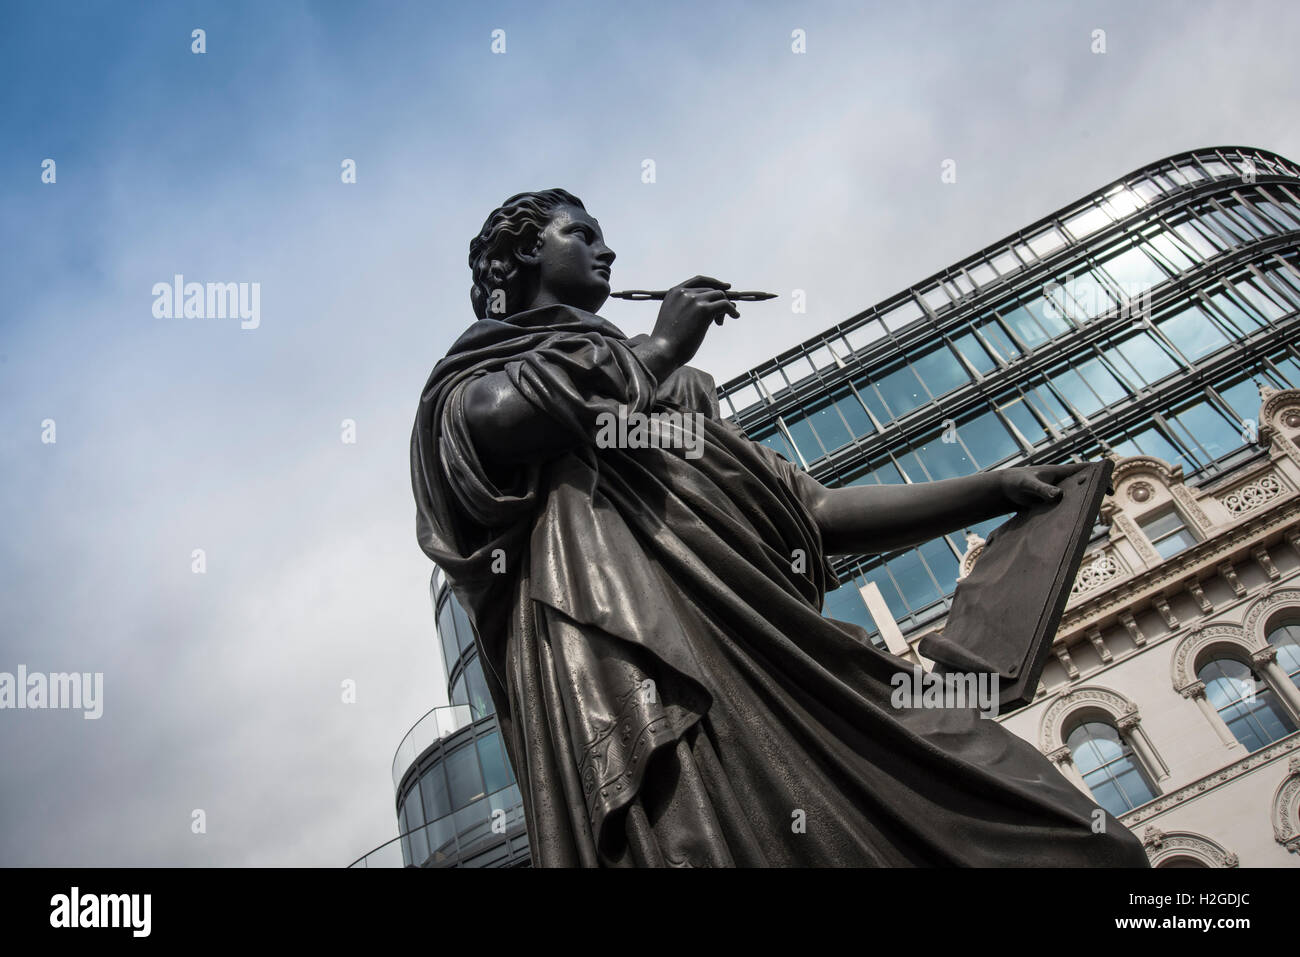 statue of Holborn Viaduct in London - Stock Image